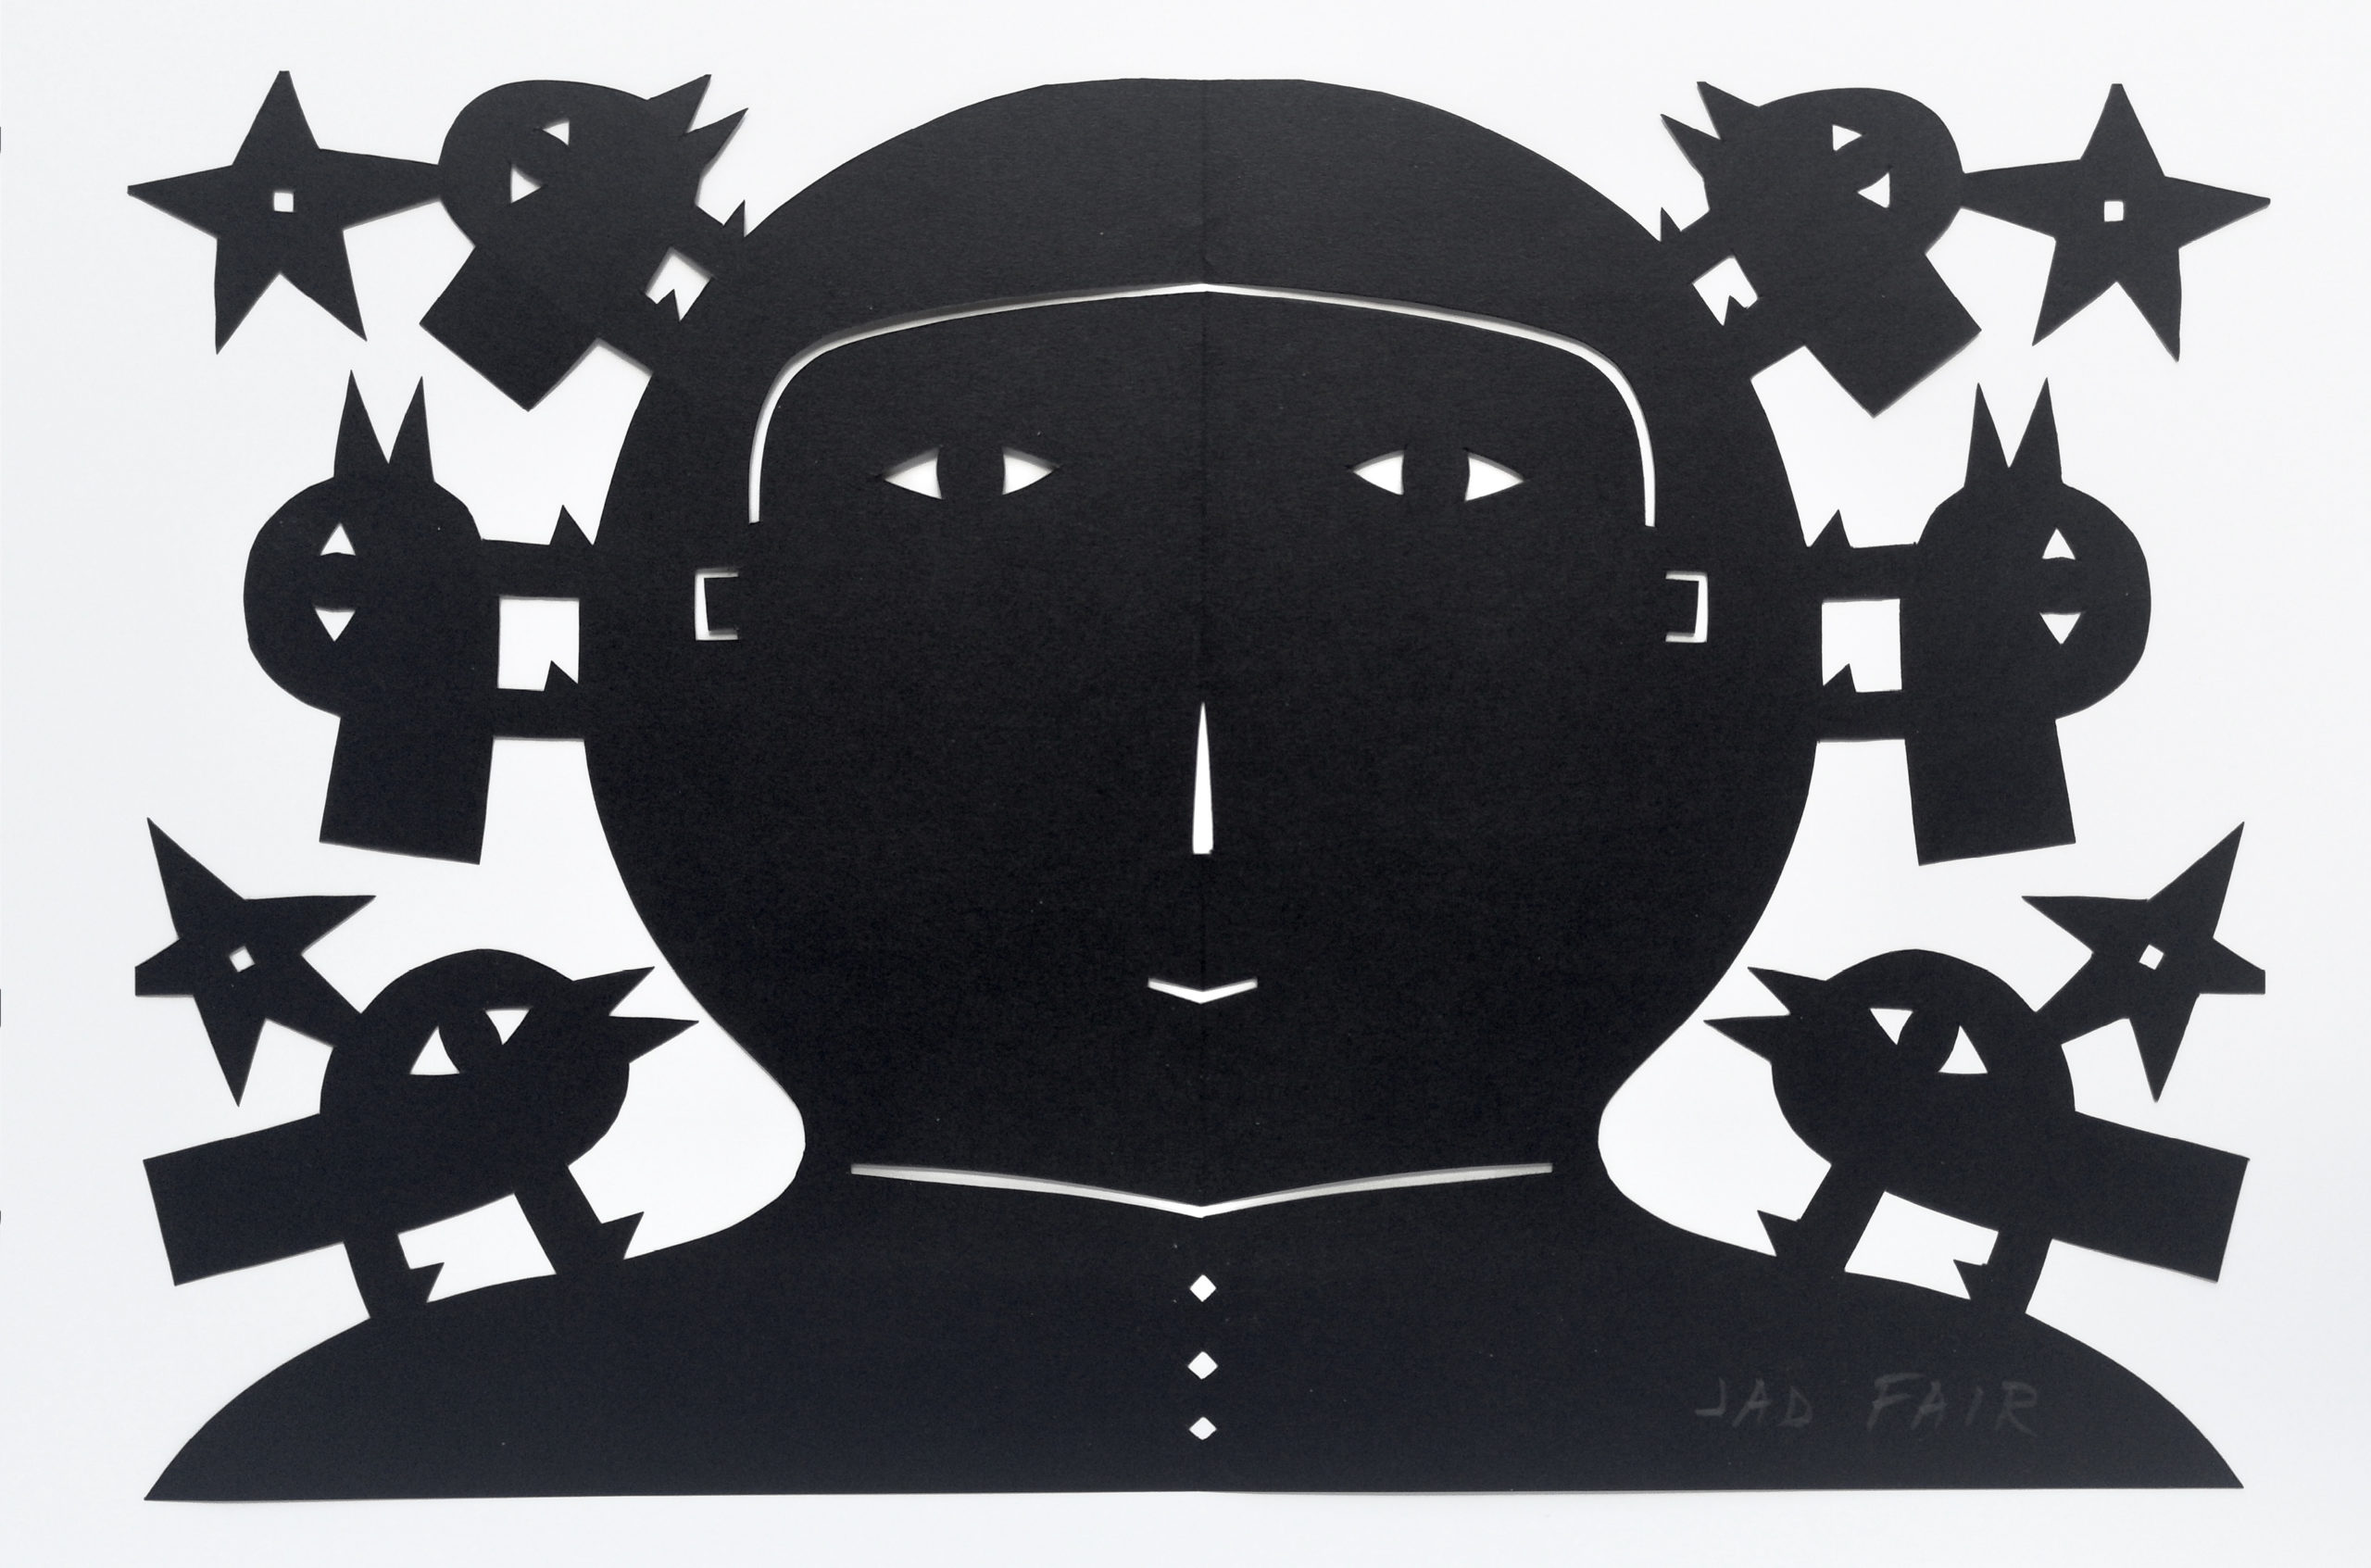 Original papercut by Jad Fair of Half Japanese: Signed Artwork on sale